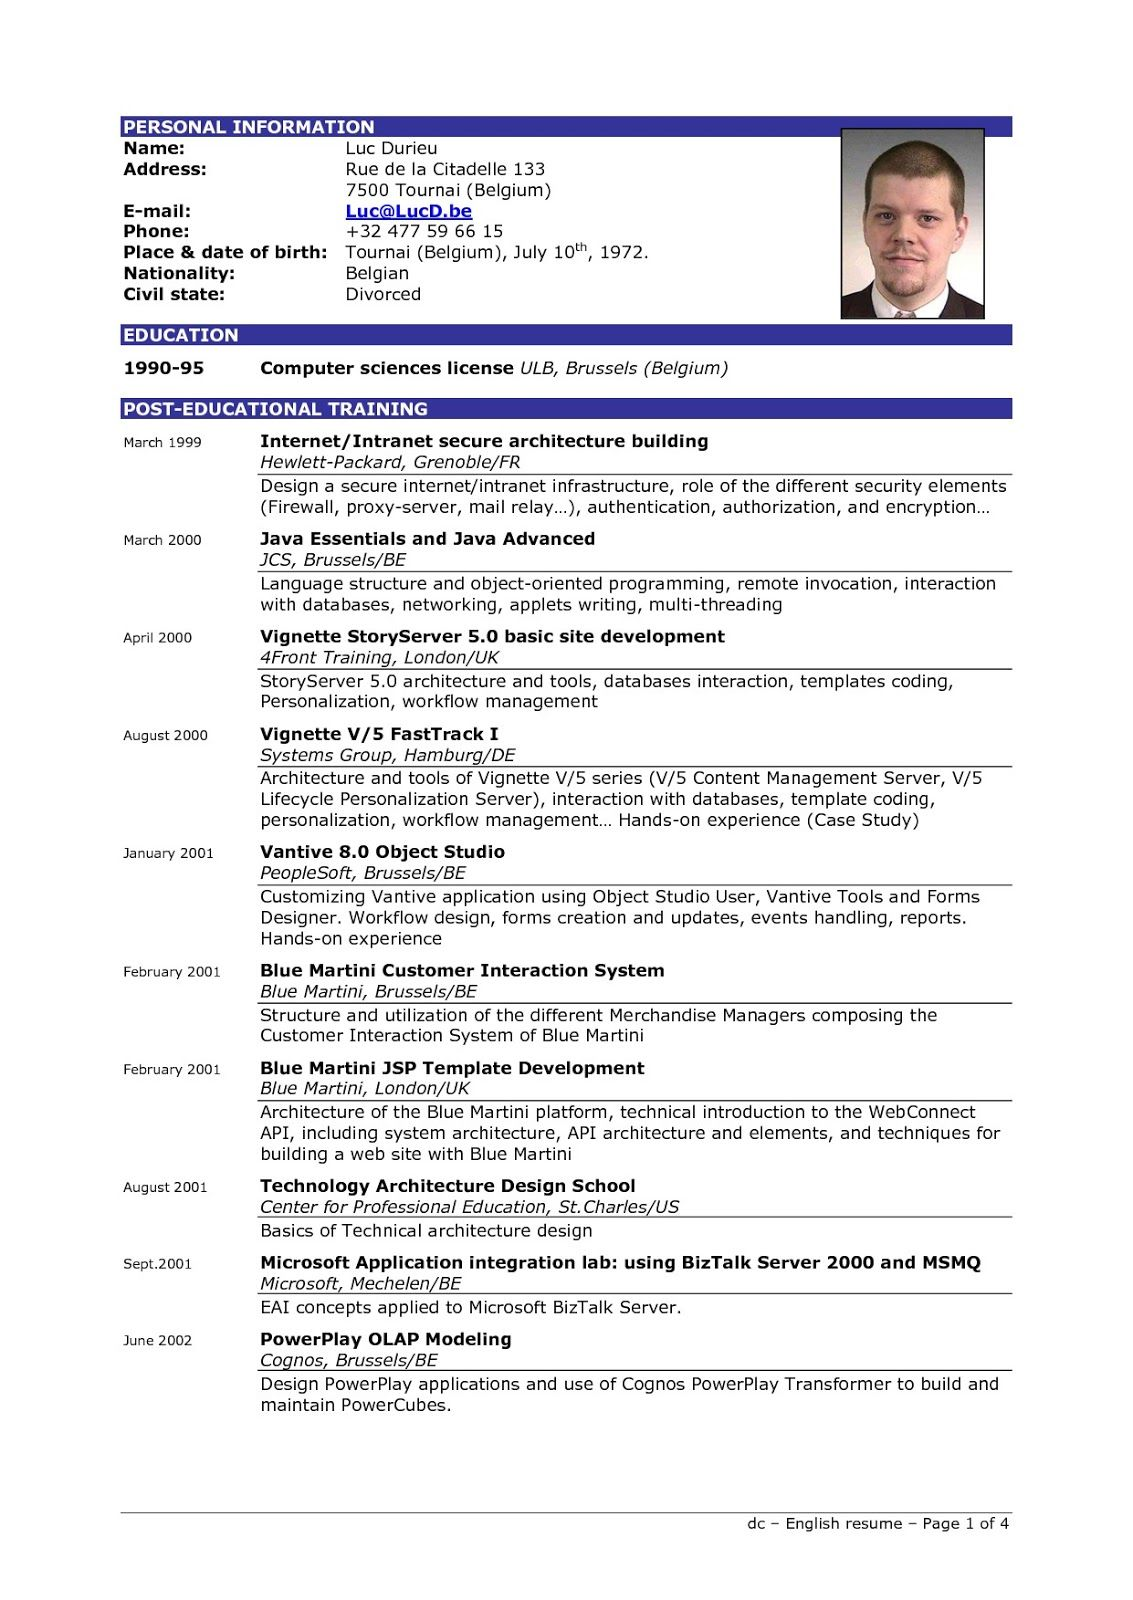 Resumes Template Tips For Choosing A Free Resume Template  Resume Templates